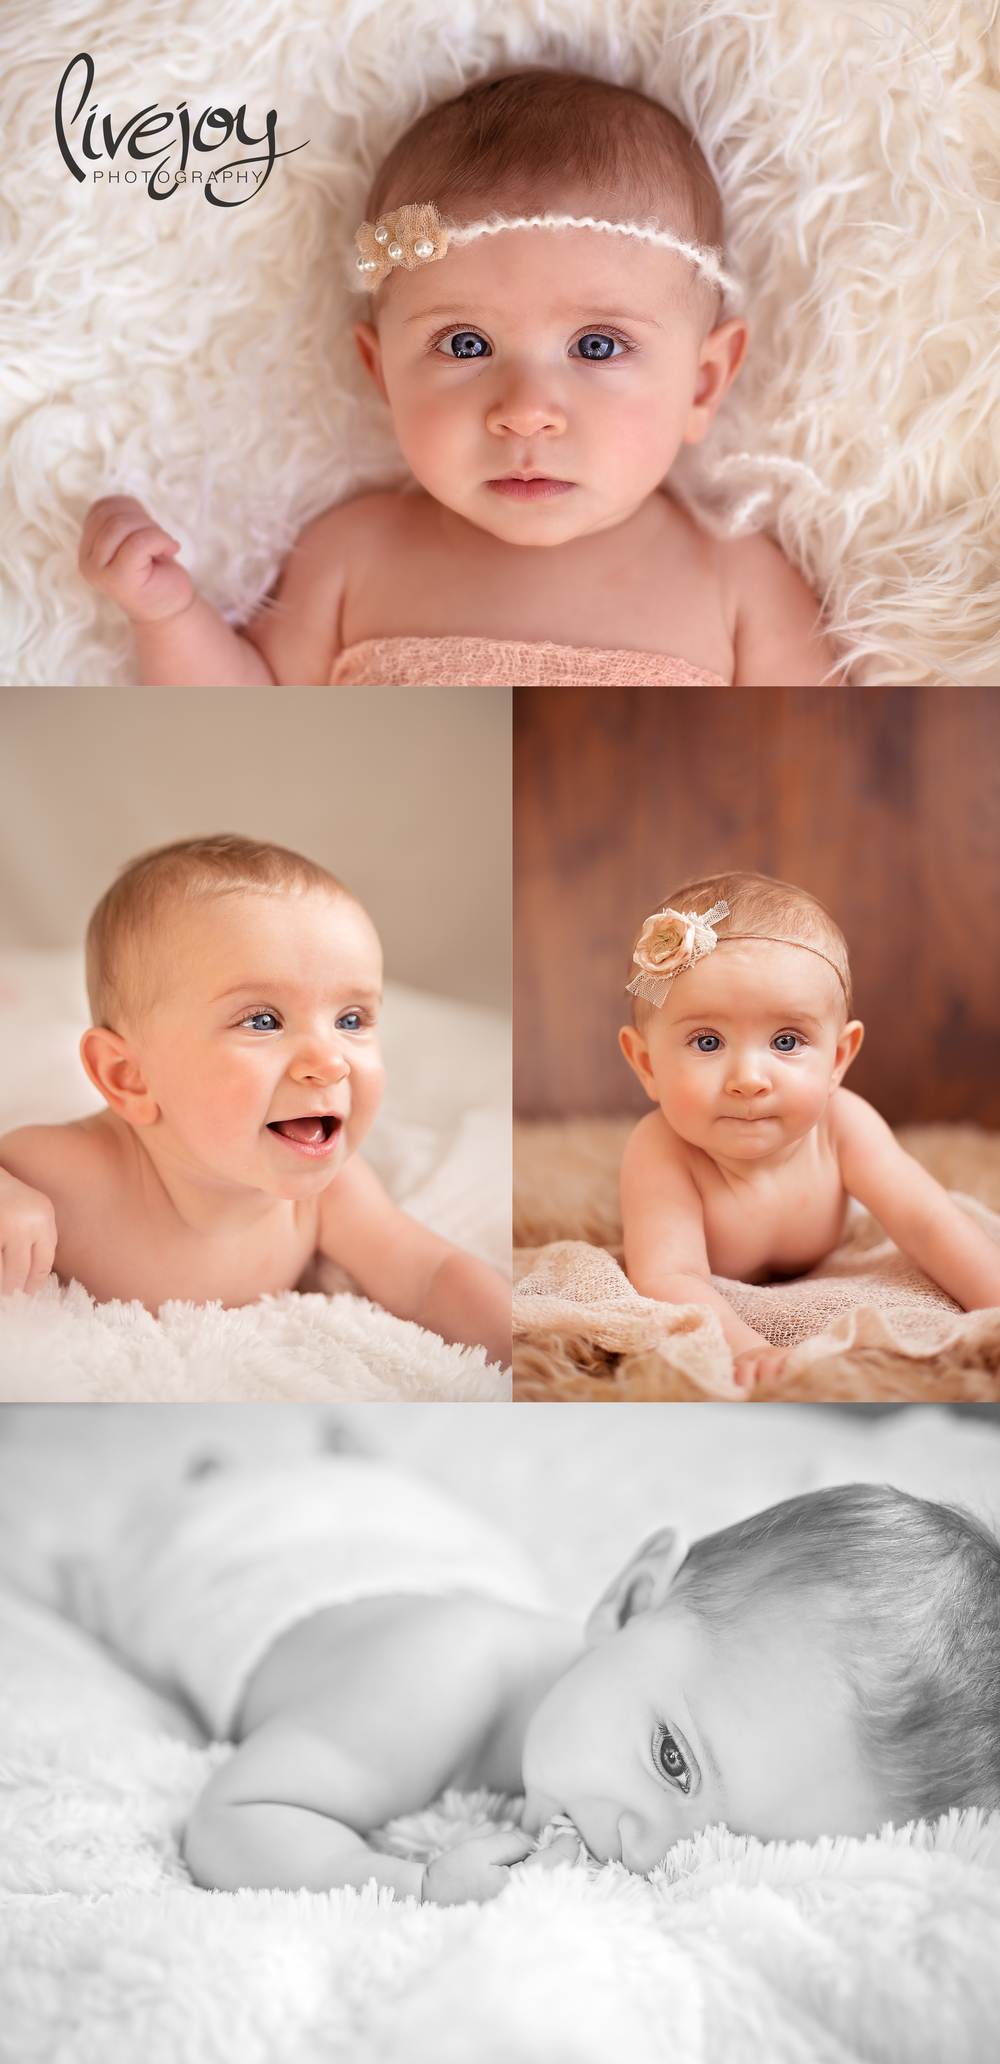 6 Months Baby Photography | Salem, Oregon | LiveJoy Photography